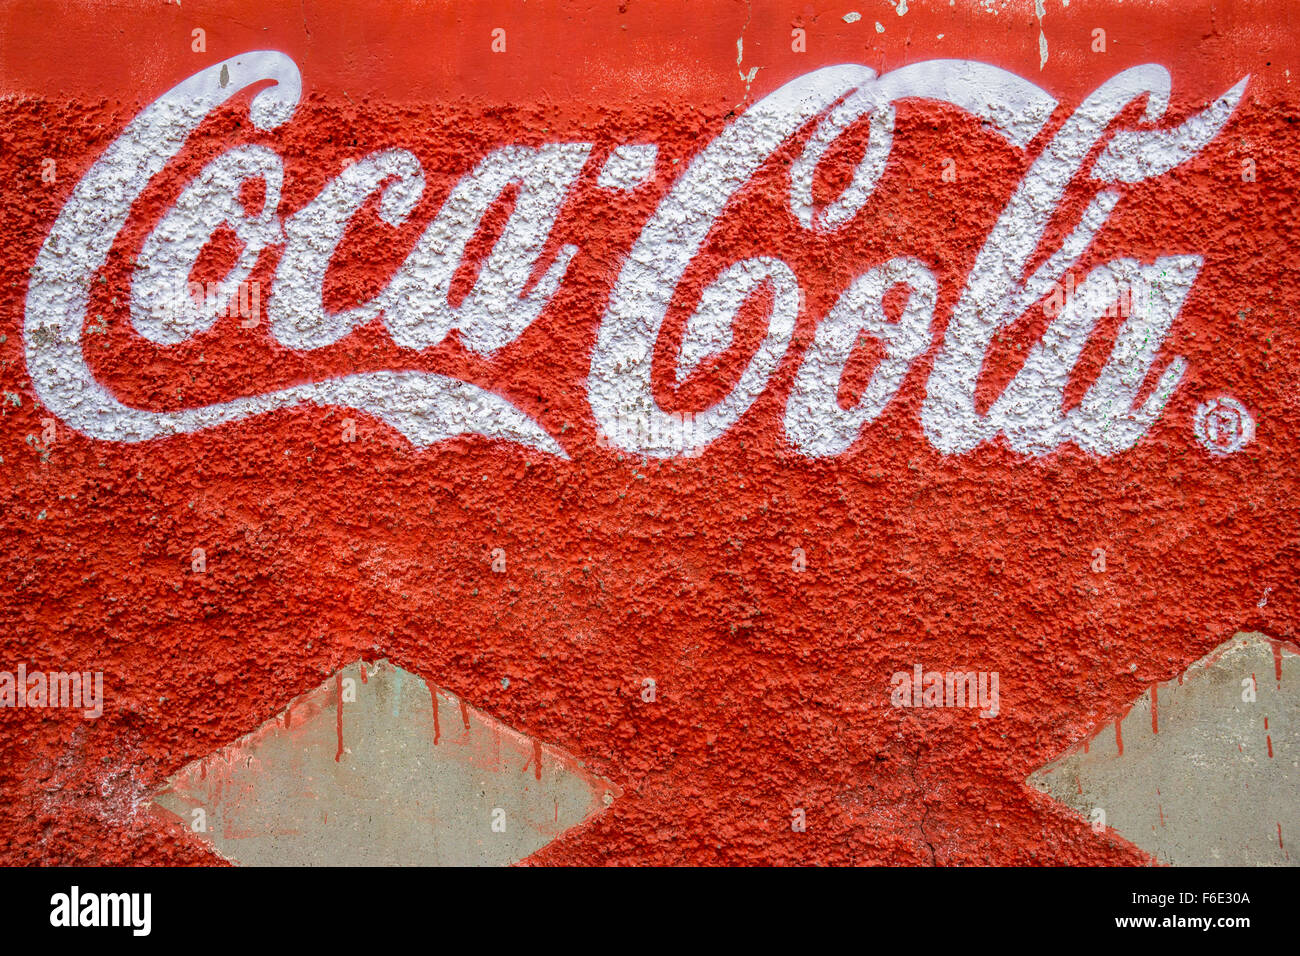 LIMA, PERU - OCTOBER 10, 2014 : Coca Cola trademark letters written on a rough red wall, seen in Lima, Peru - Stock Image